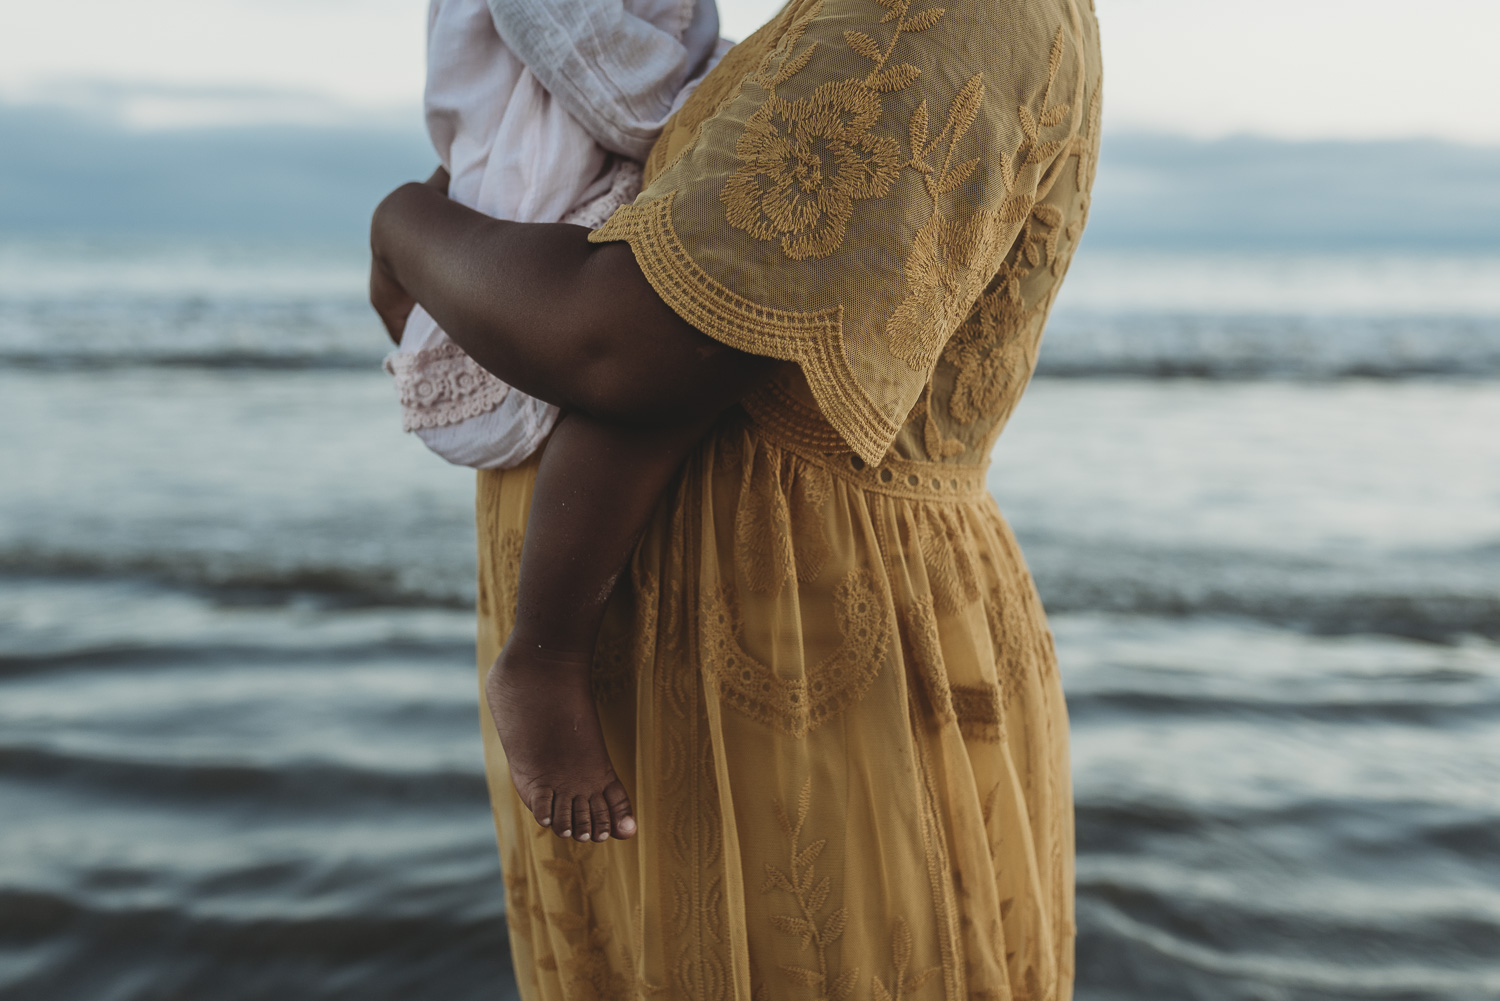 sandiego_family_photography_beach_lifestyle_newborn_maternity-130.jpg